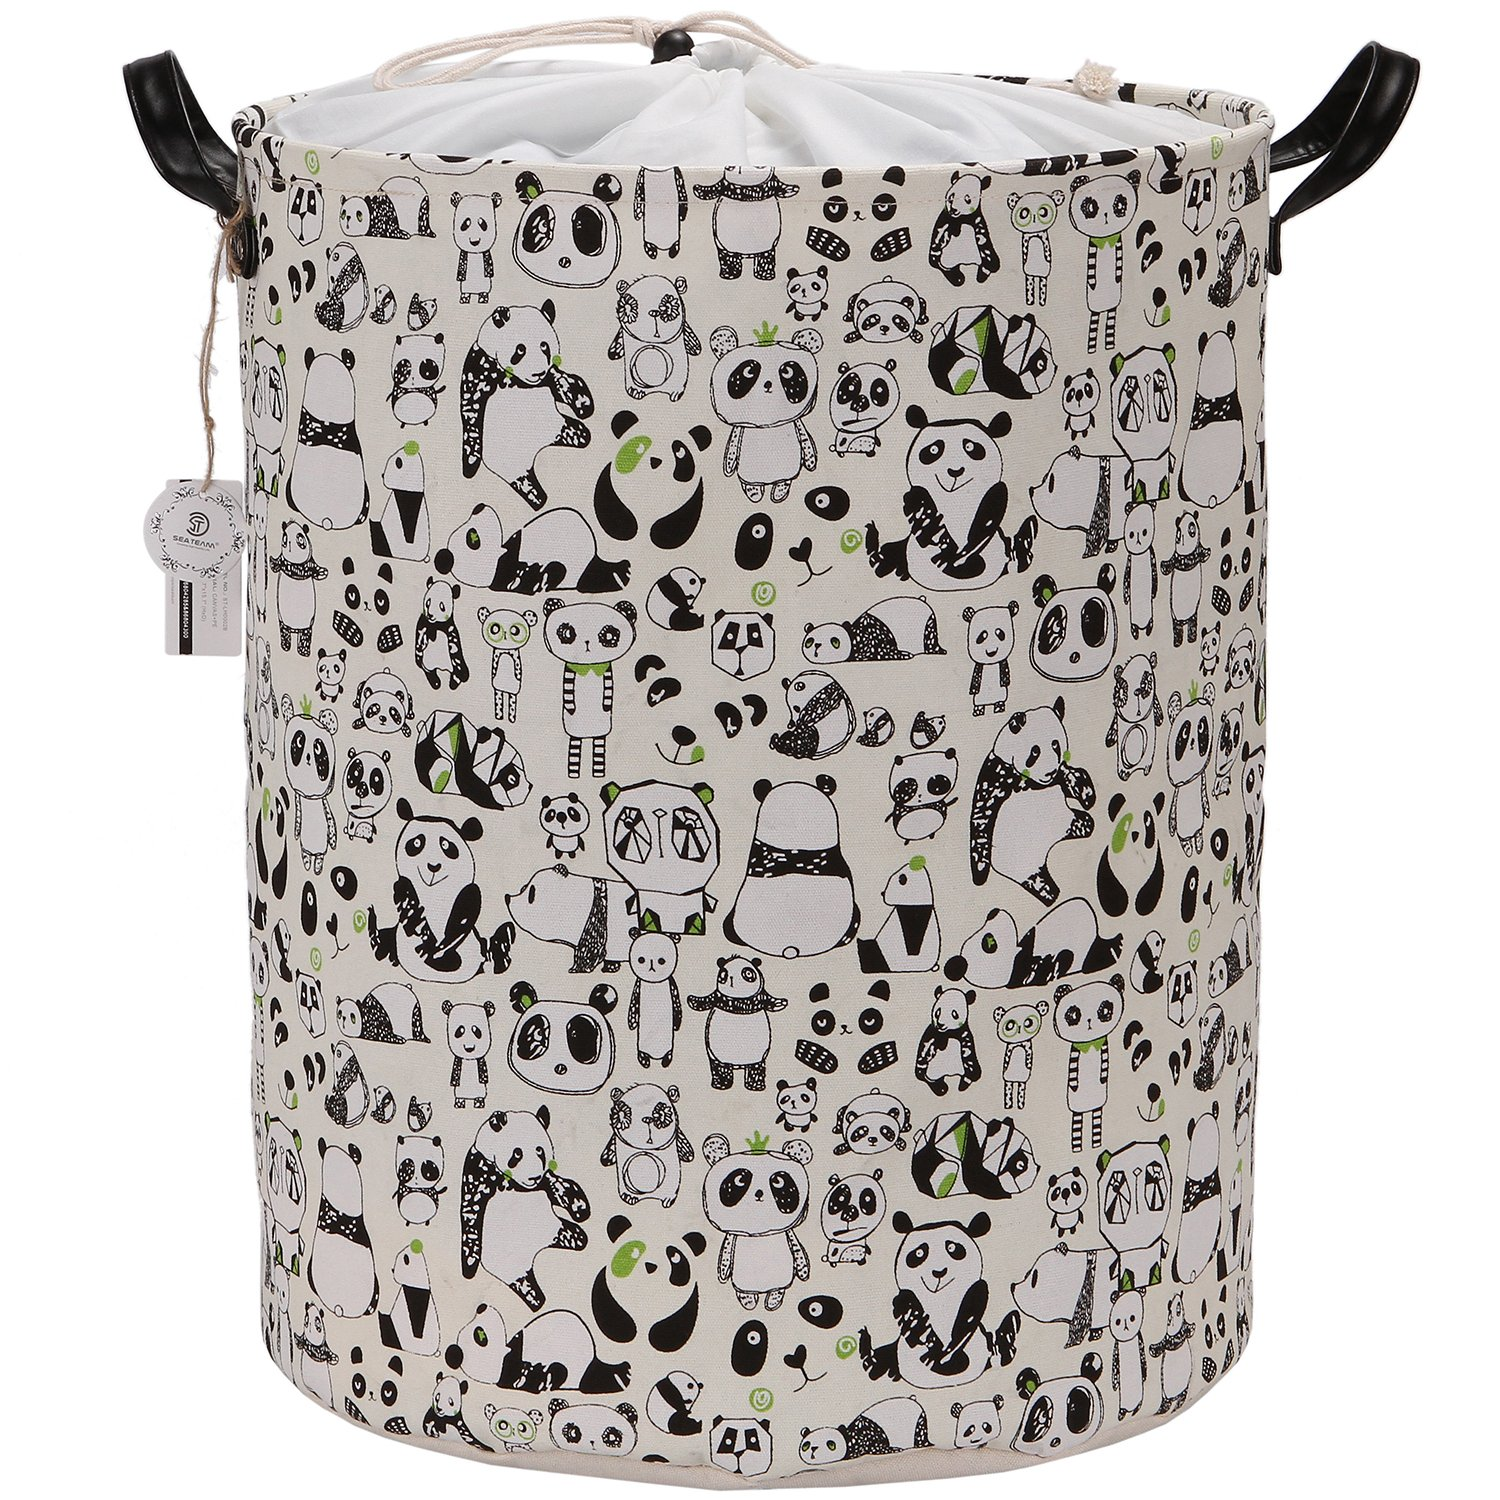 Sea Team 19.7'' Large Size Stylish Panda Design Canvas & Linen Fabric Laundry Hamper Storage Basket with Premium PU Leather Handles for Kid's Room, Drawstring Cover with Waterproof Coating